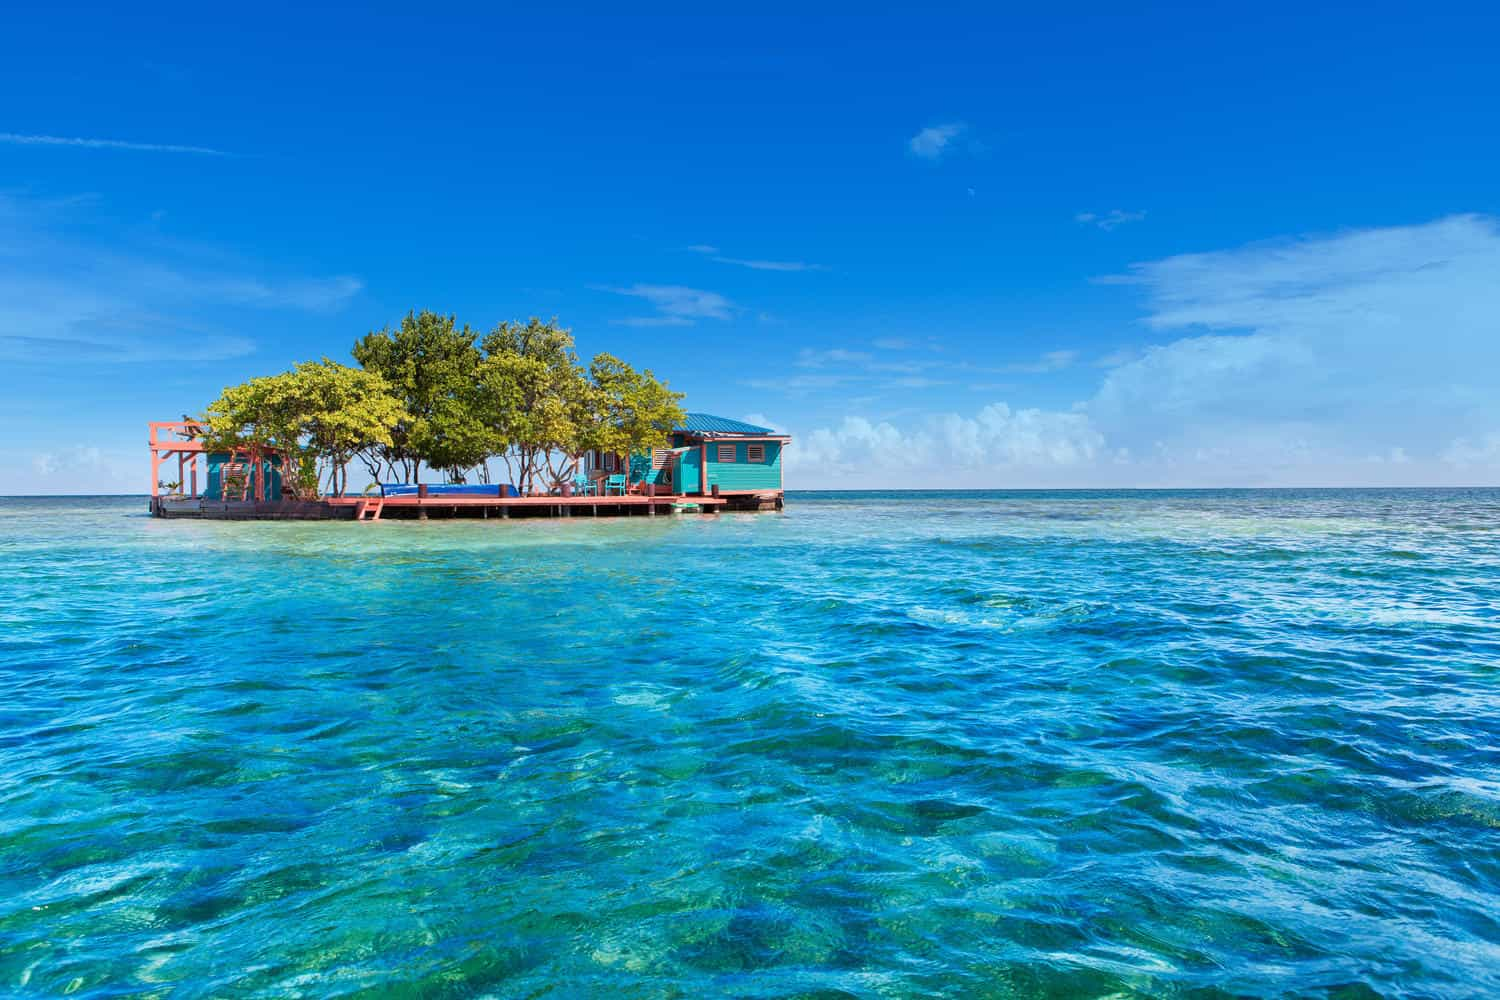 £100 Discount on Airbnb Private Island or Treehouse Rental, Traveling Well For Less